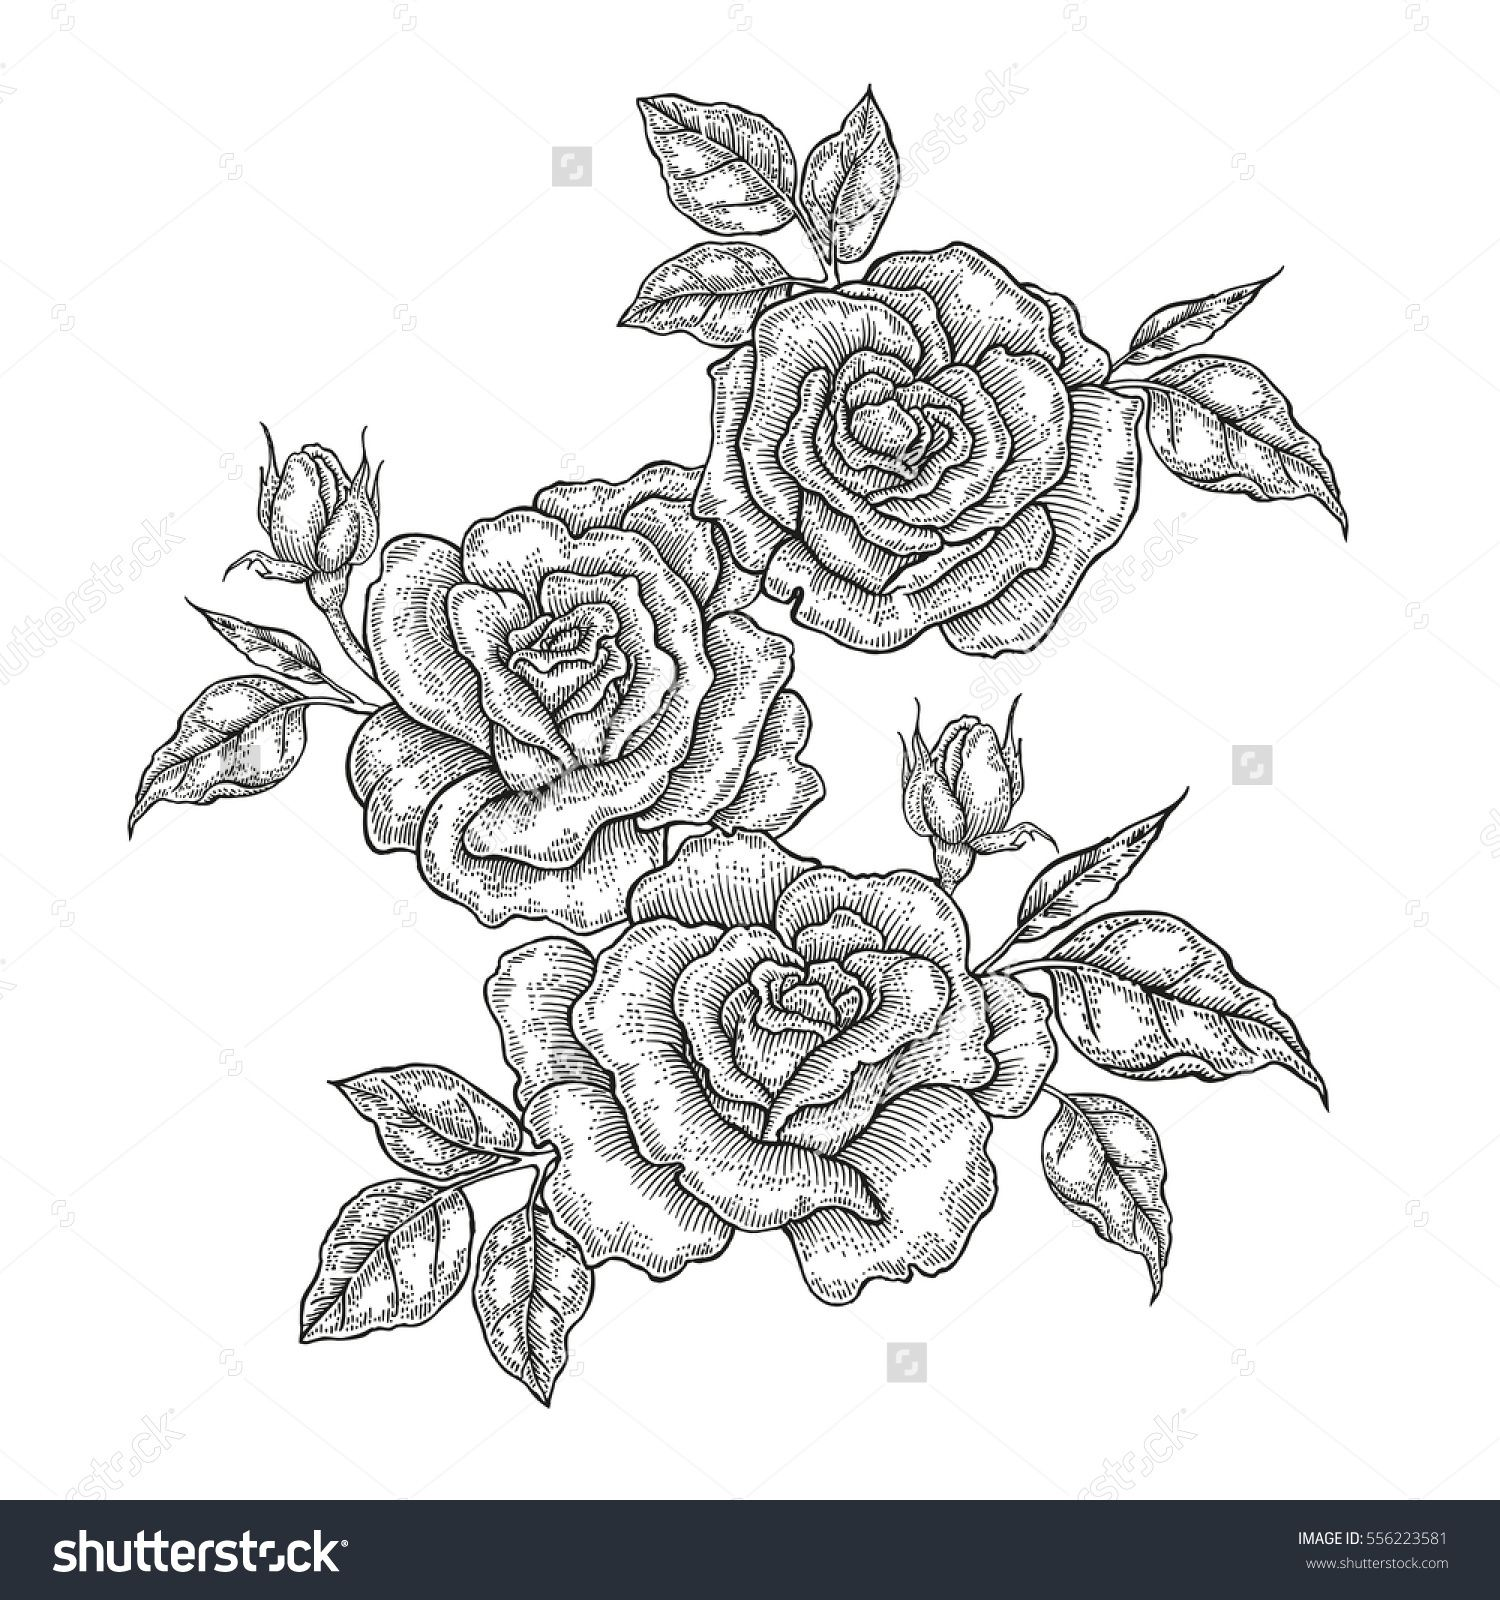 Hand drawn vector flowers. Vintage floral composition, rose flowers and leaves isolated on white background. Illustration engraved